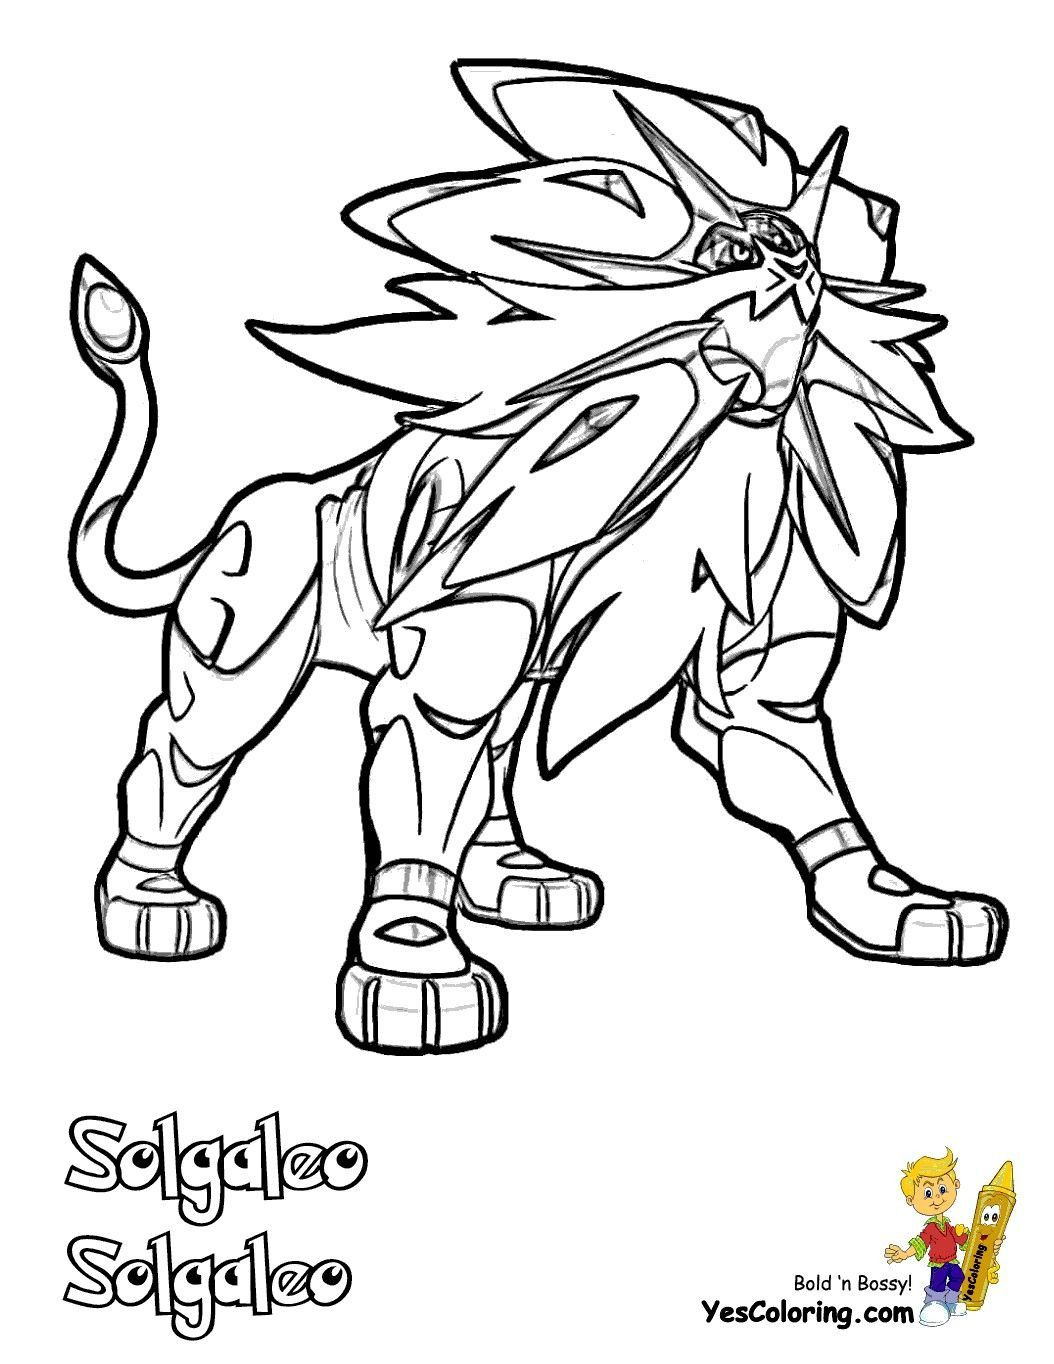 Solgaleo Pokemon Coloring Page Youngandtae Com Pokemon Coloring Pages Pokemon Coloring Page Pokemon Coloring